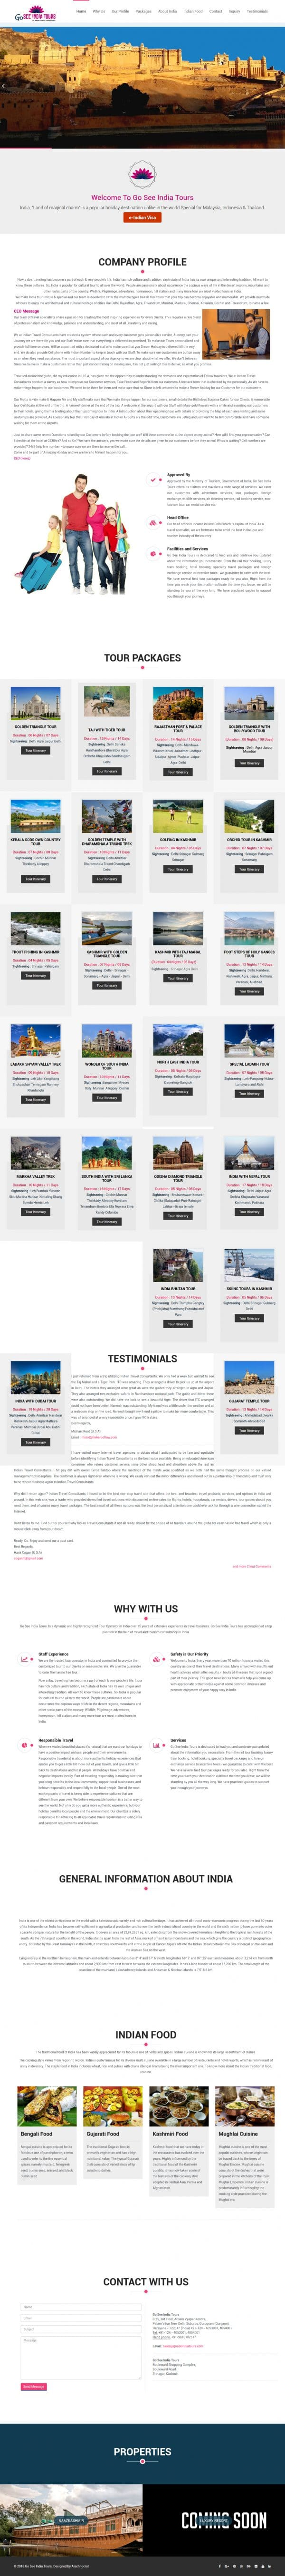 Go See India Tours